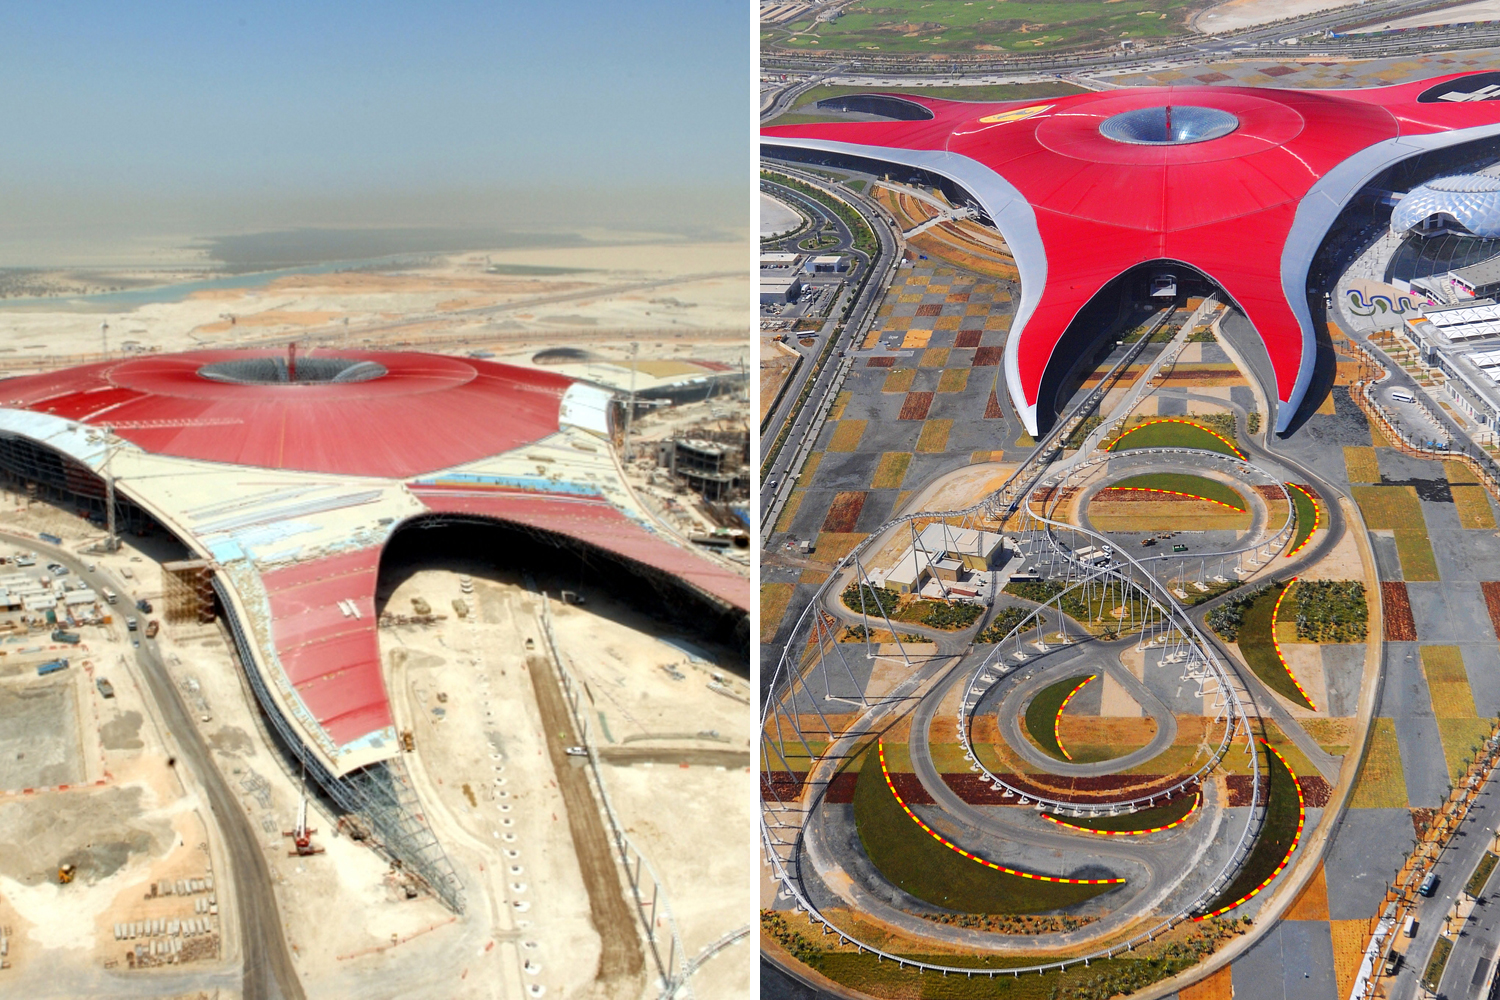 Incredible Pictures Of Ferrari World Abu Dhabi Then And Now Attractions Time Out Abu Dhabi